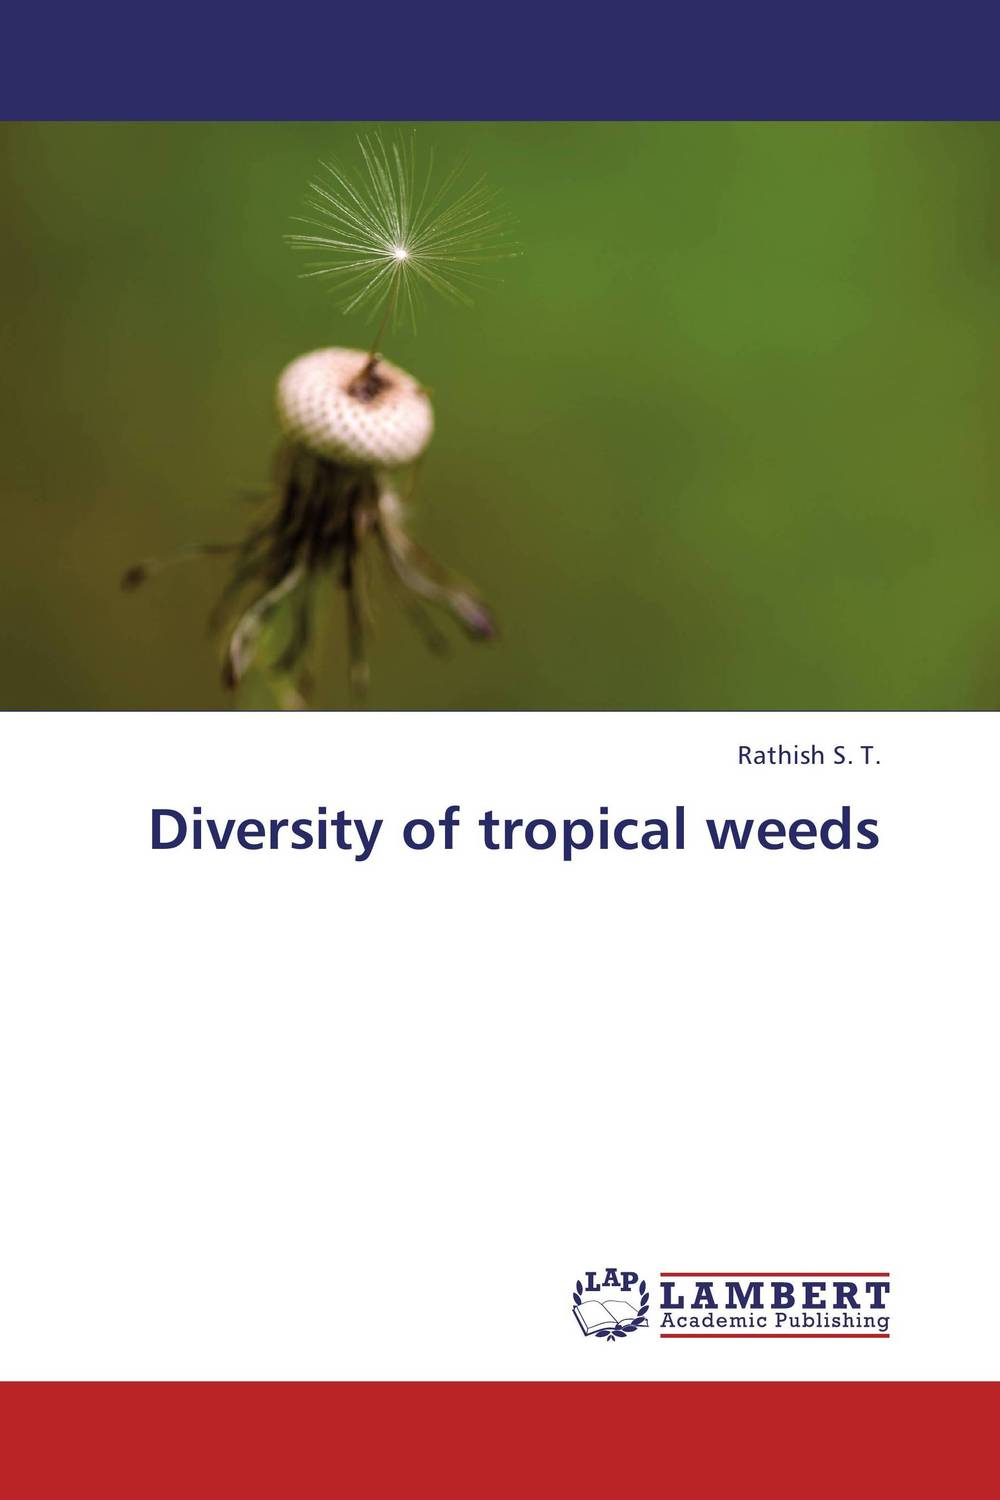 Diversity of tropical weeds linguistic diversity and social justice